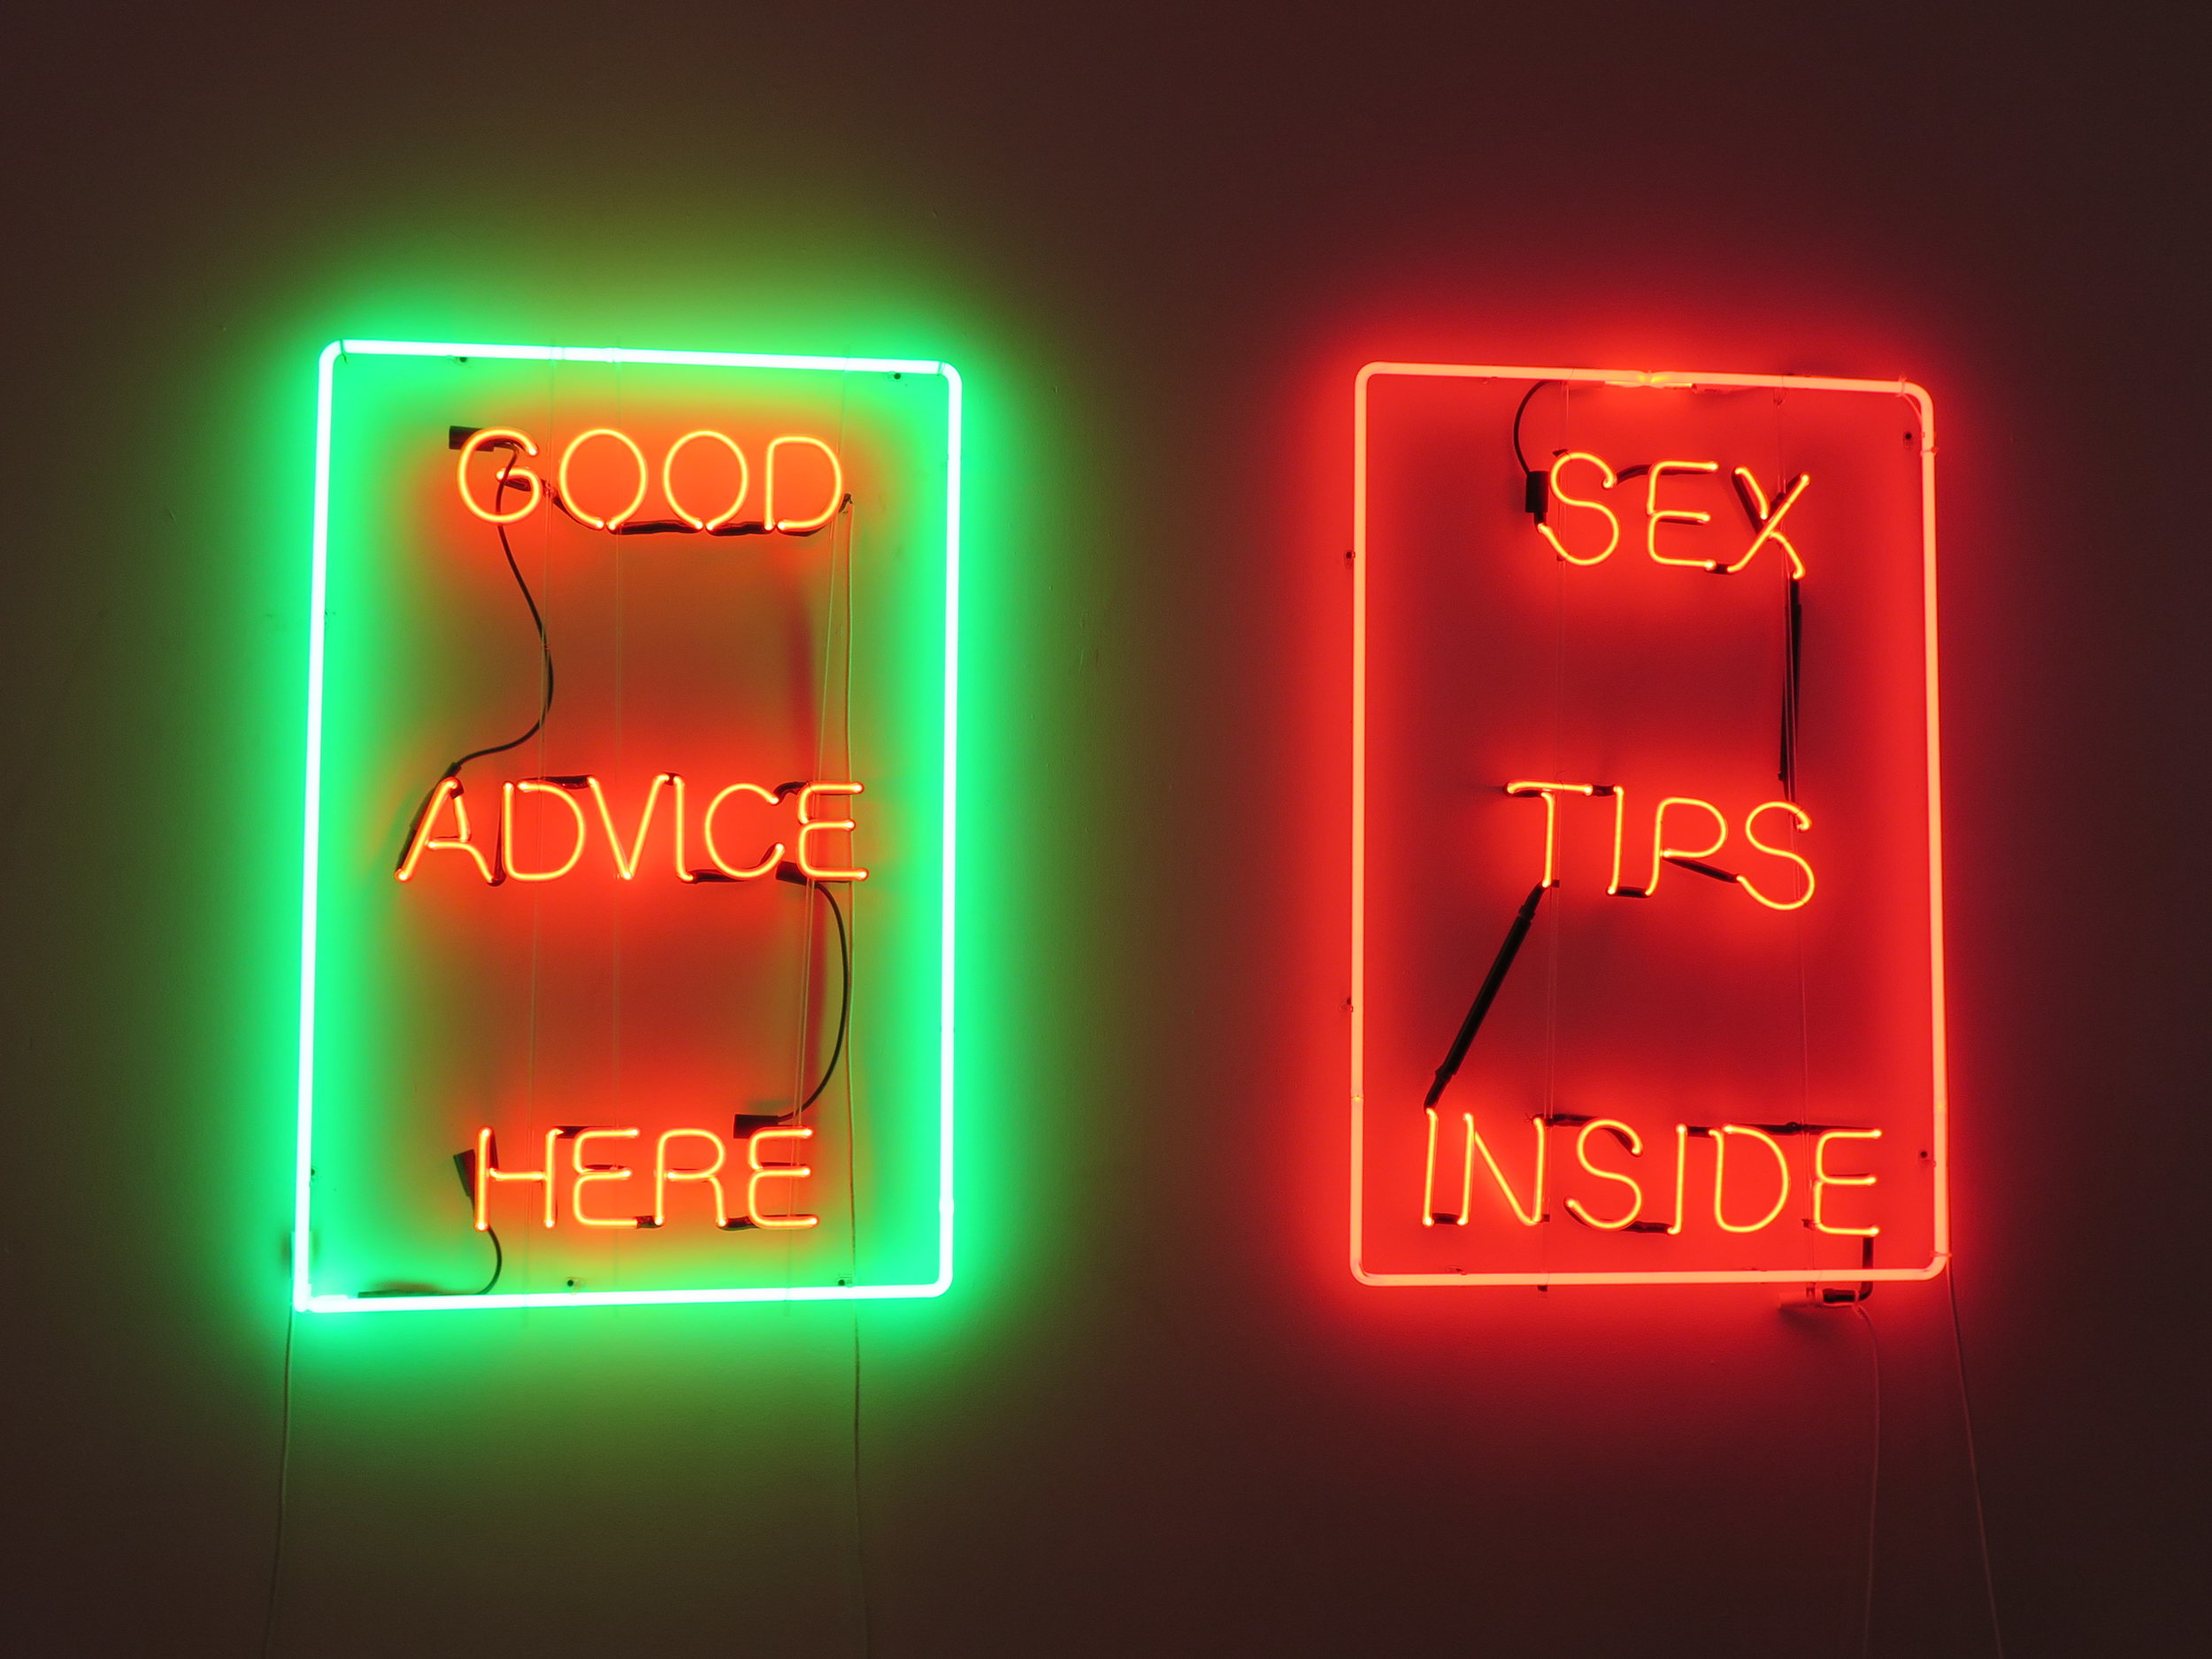 Photo: Marcia Gagliardi. © mymilligram. From She Bends neon show at The Midway Gallery. Artist: Dana Caputo.